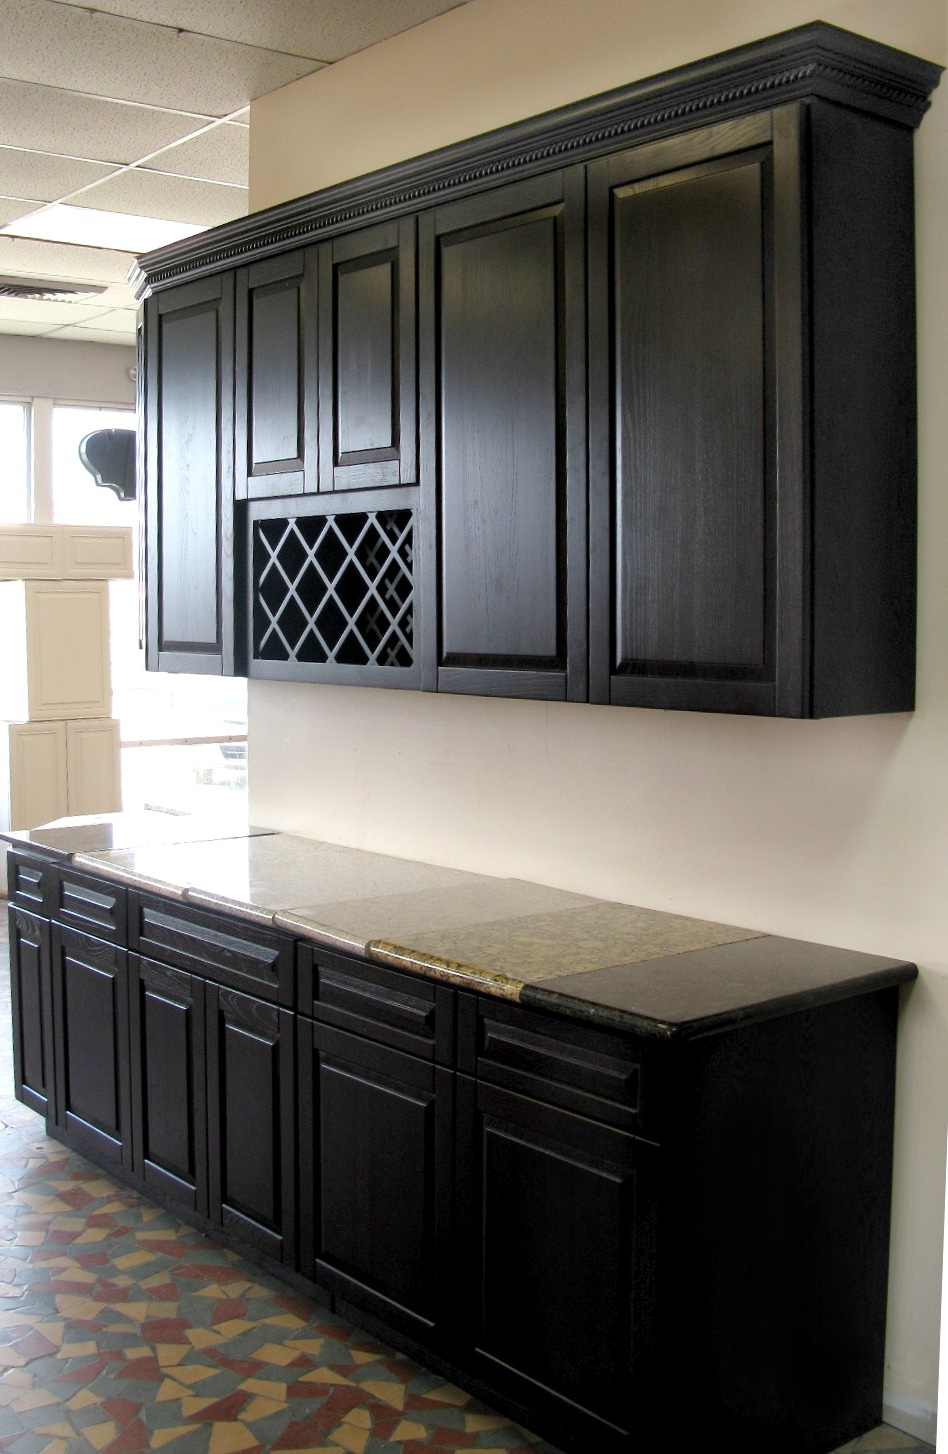 Cabinets for kitchen photos black kitchen cabinets for Dark cabinet kitchen ideas